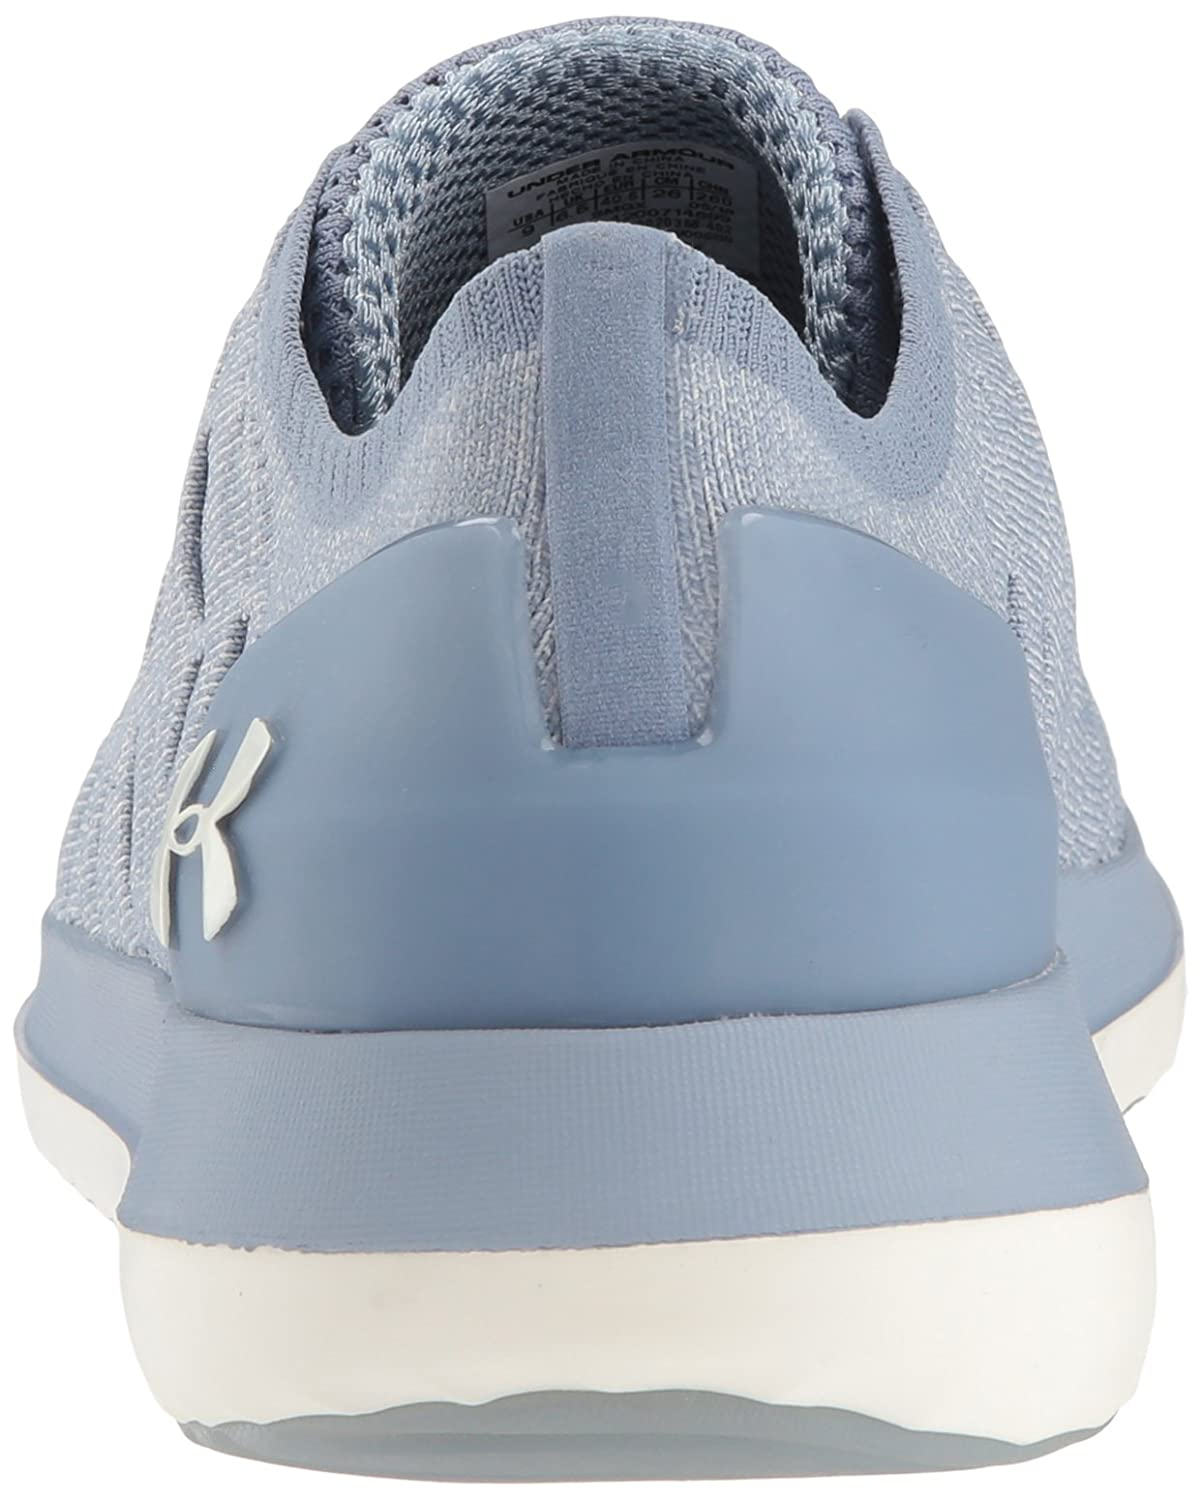 Under Armour Women's Slingride 2 Sneaker B076S9W1TW 10 M US|Washed Blue (402)/Washed Blue